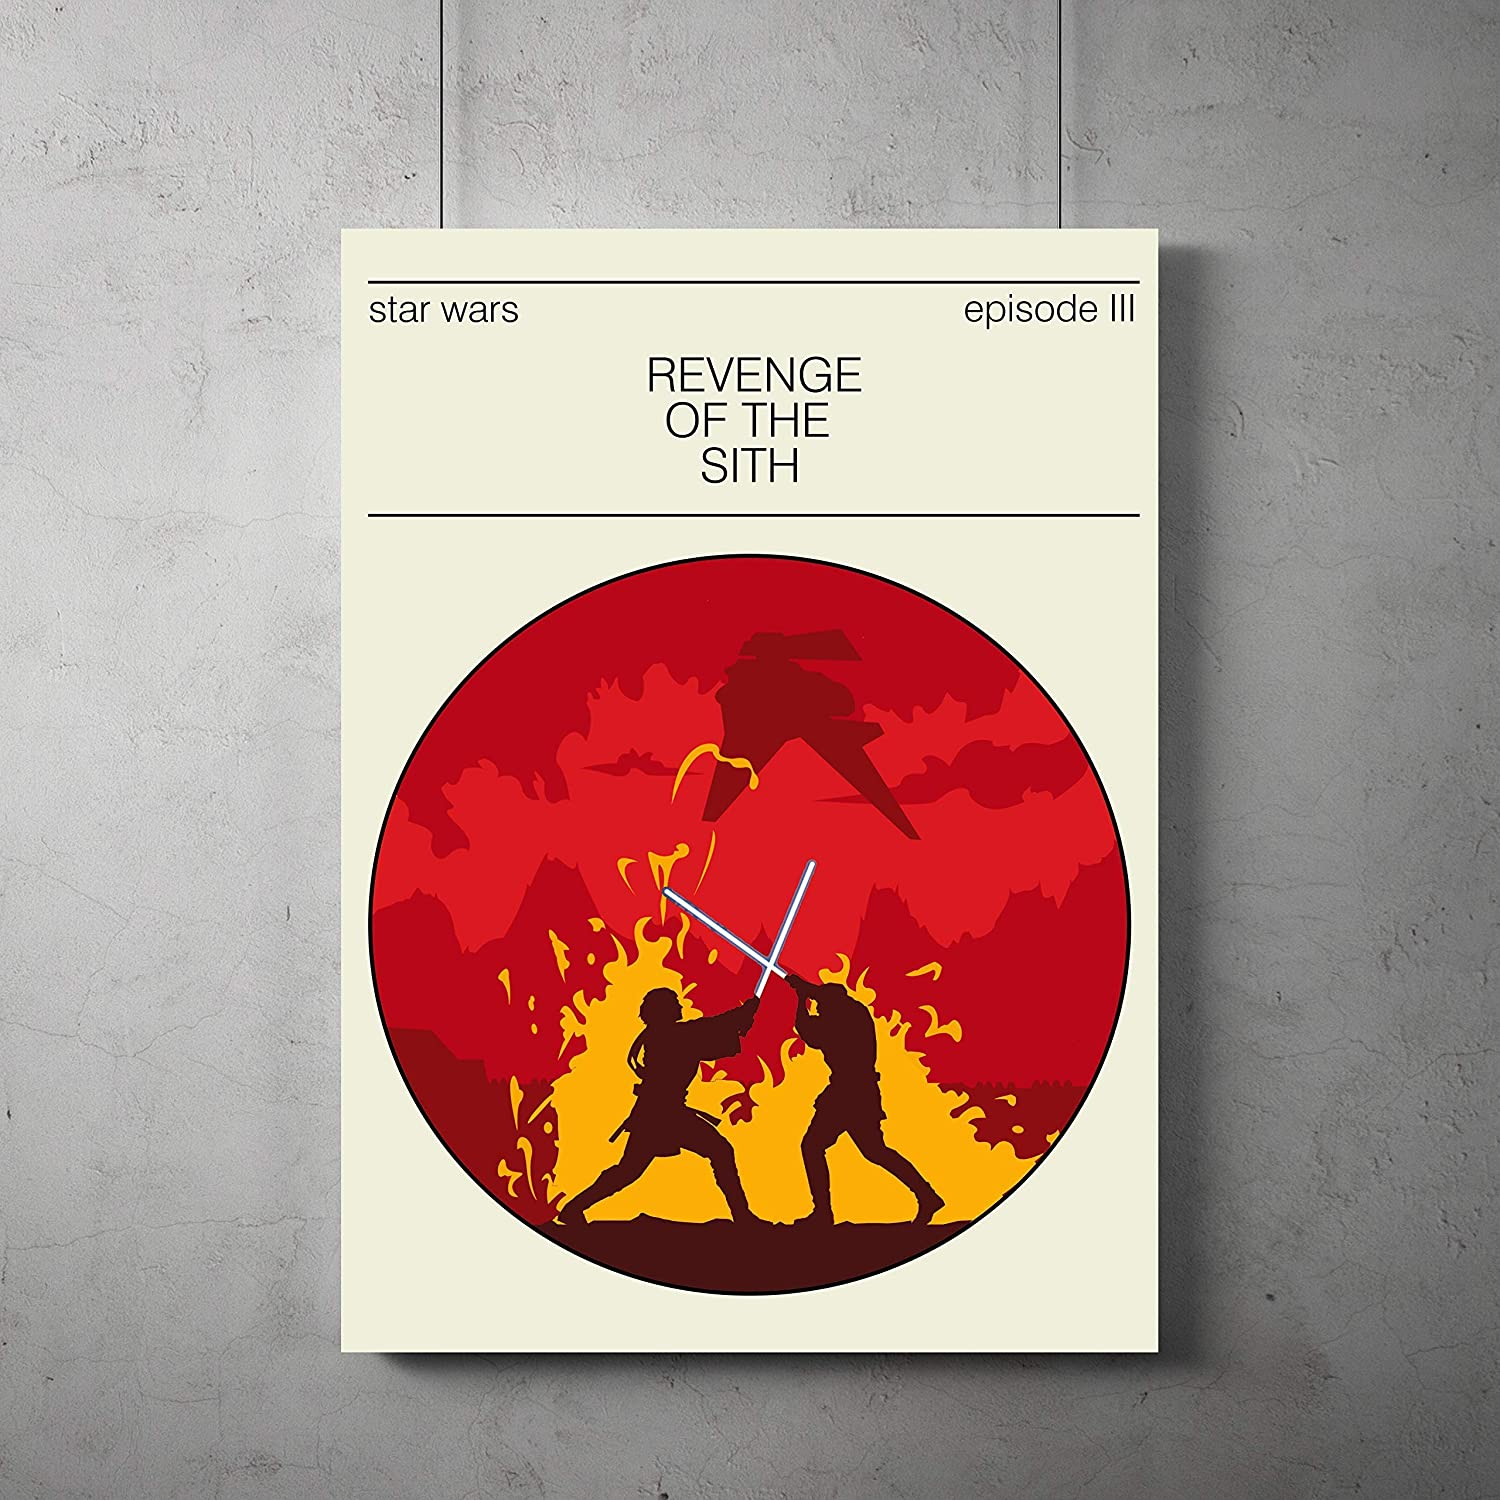 Amazon Com Star Wars Revenge Of The Sith Poster Revenge Of The Sith Minimalist Prints Star Wars Home Decor All Prints Avialable In 9 Sizes And 3 Type Of Materials Handmade